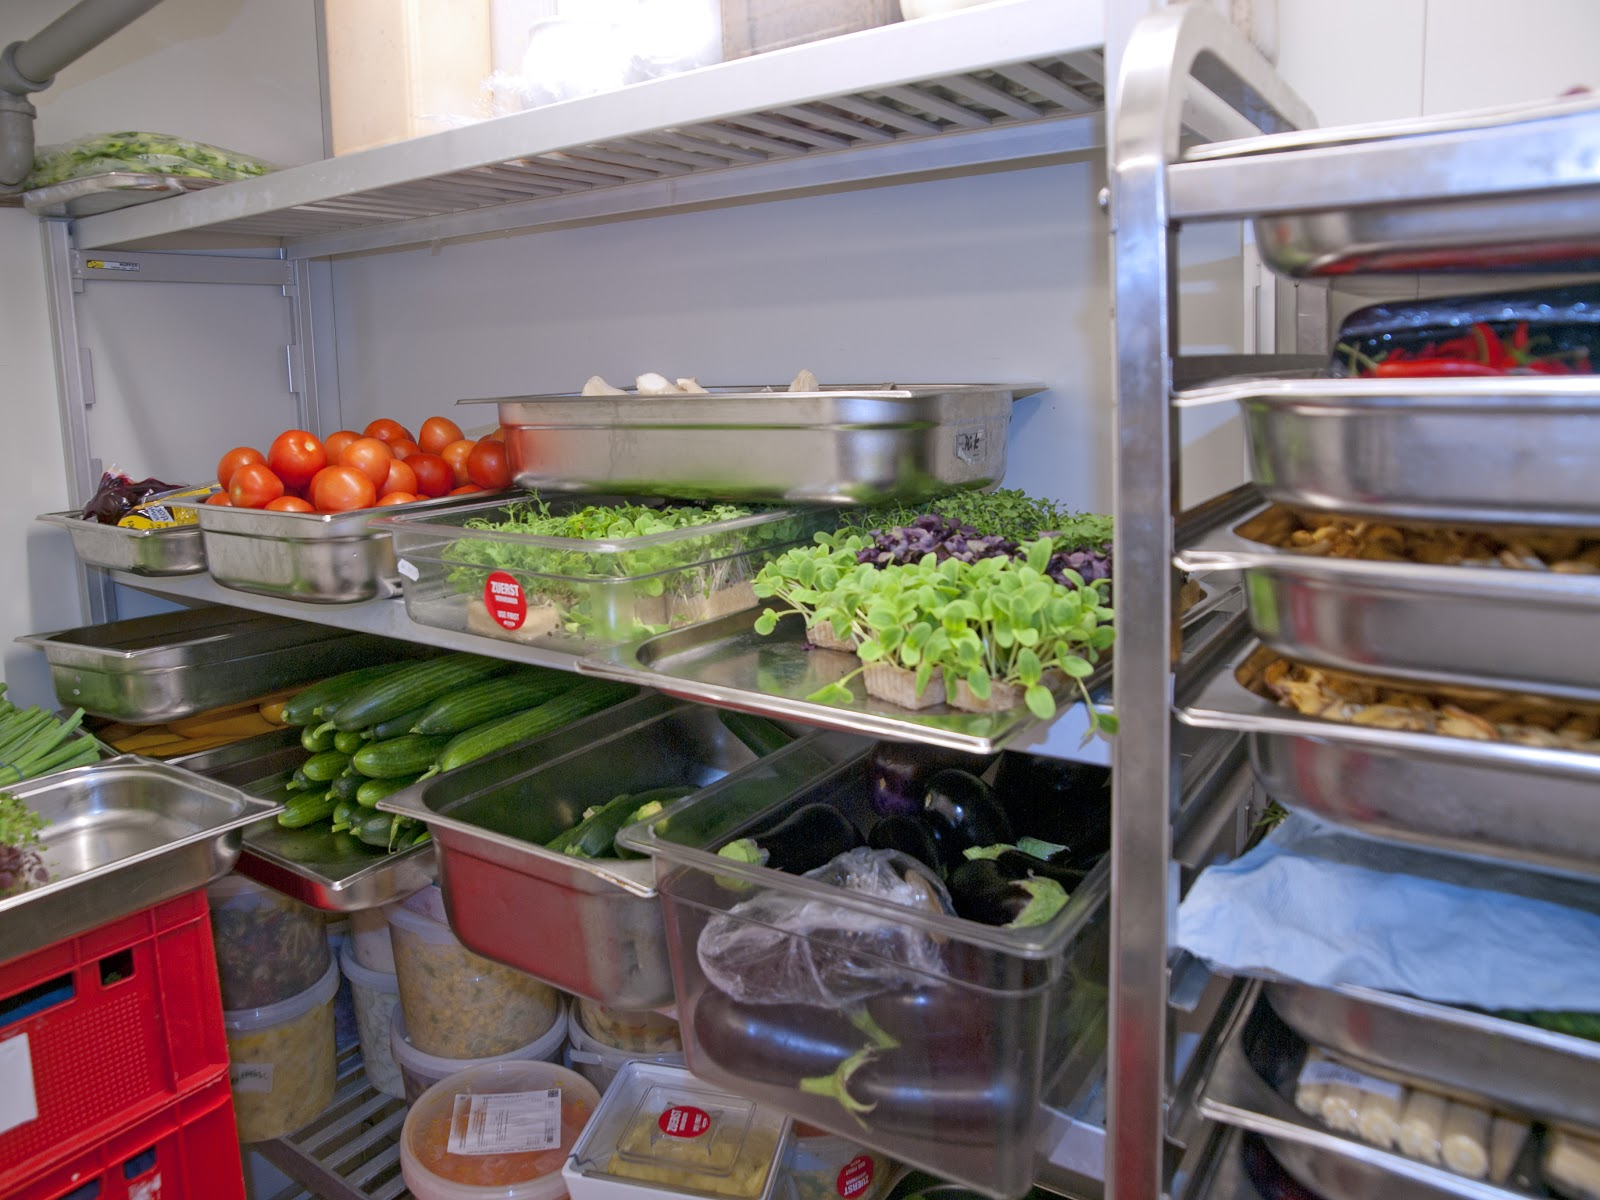 Health code violations: Veggies and trays of food in a commercial fridge